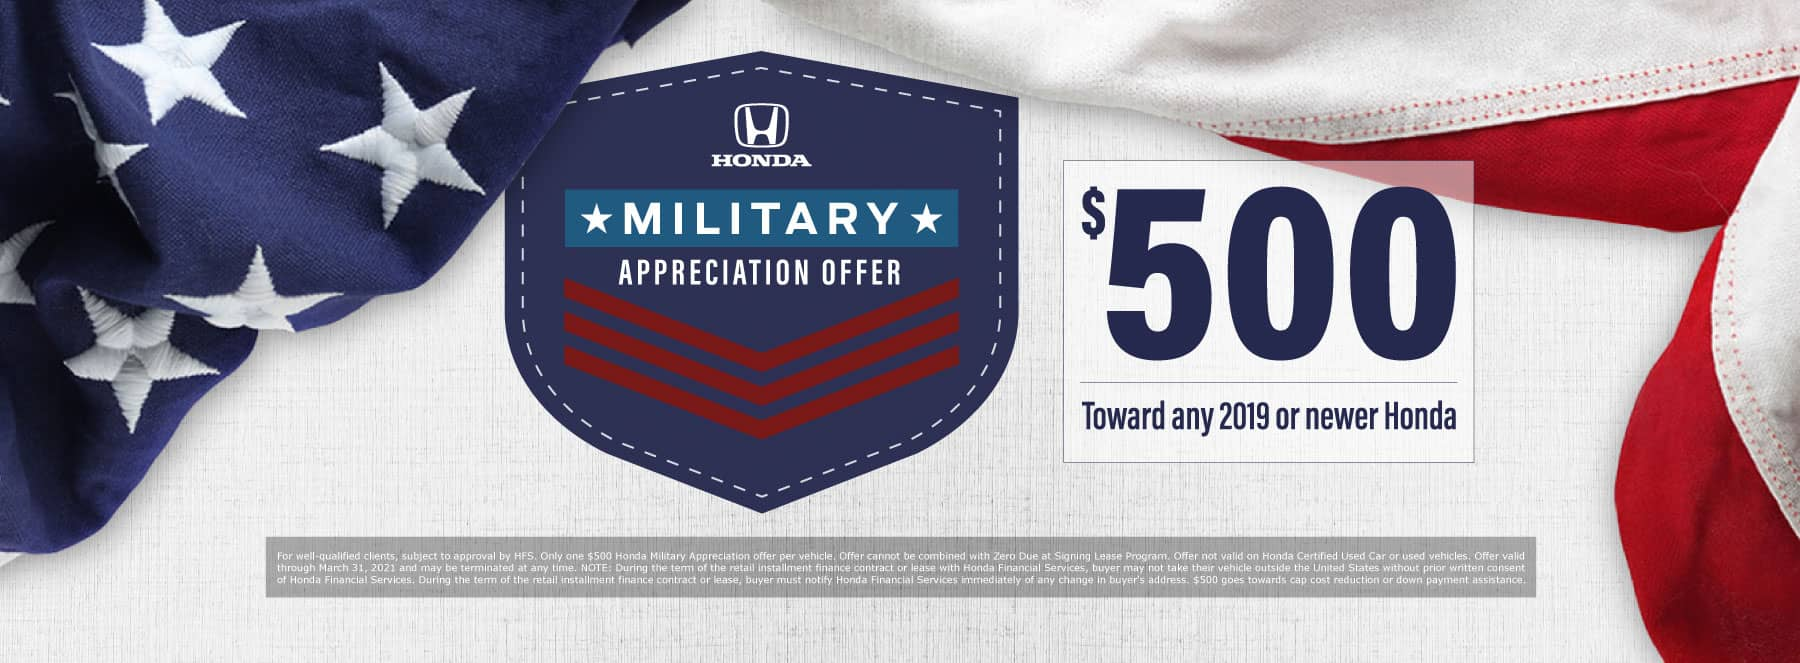 Honda Military Offer - $500 toward any 2019 or newer Honda